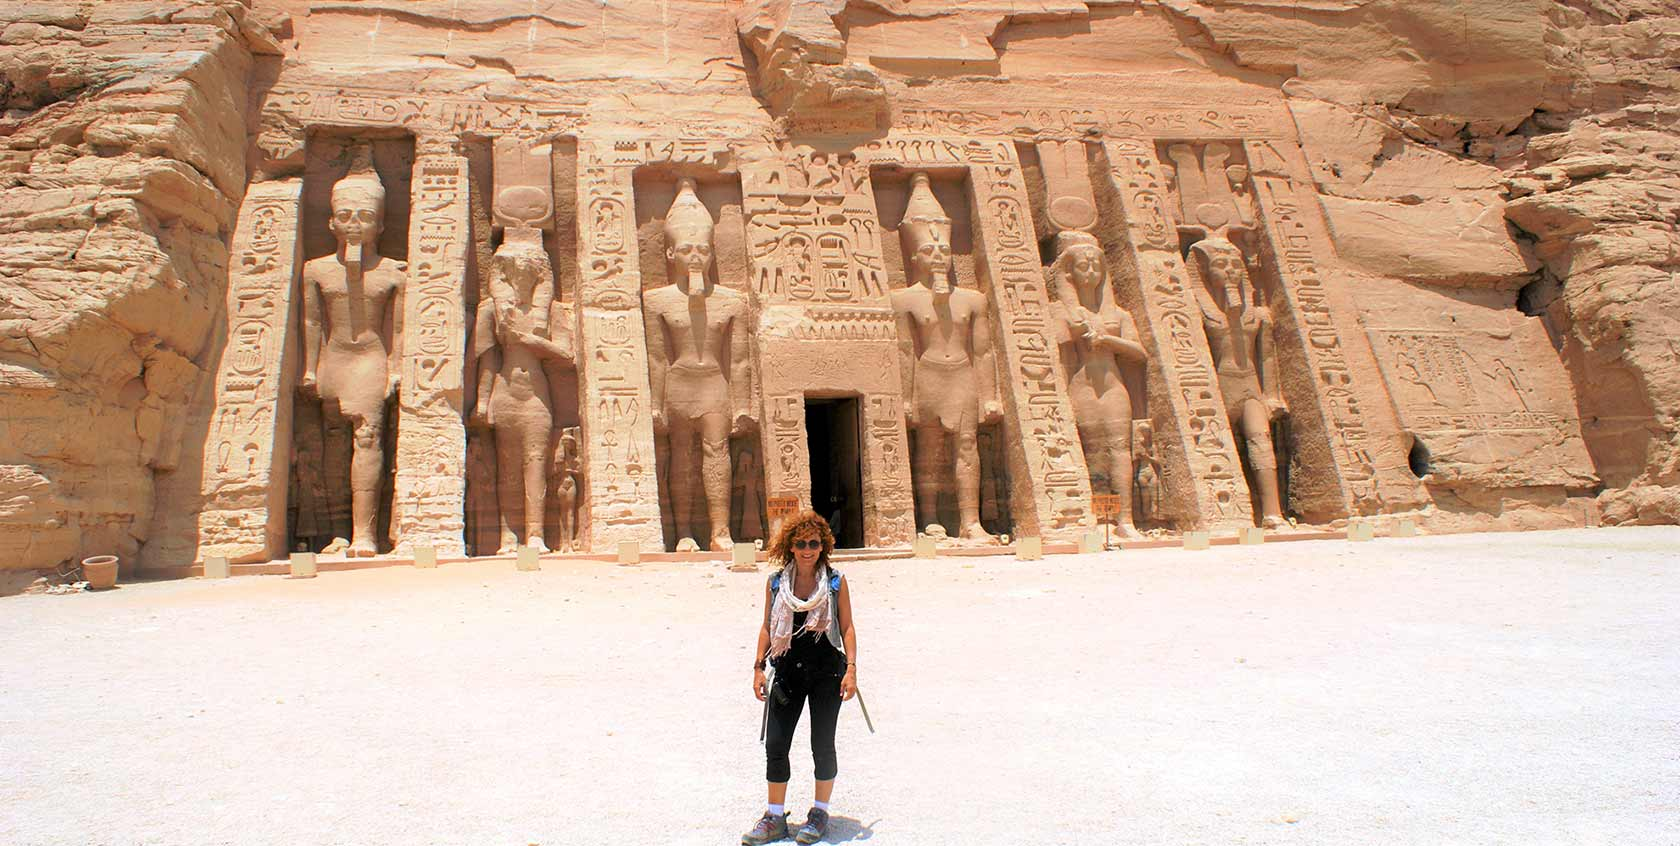 curly_nomad_egypt_abu_simbel_hathor